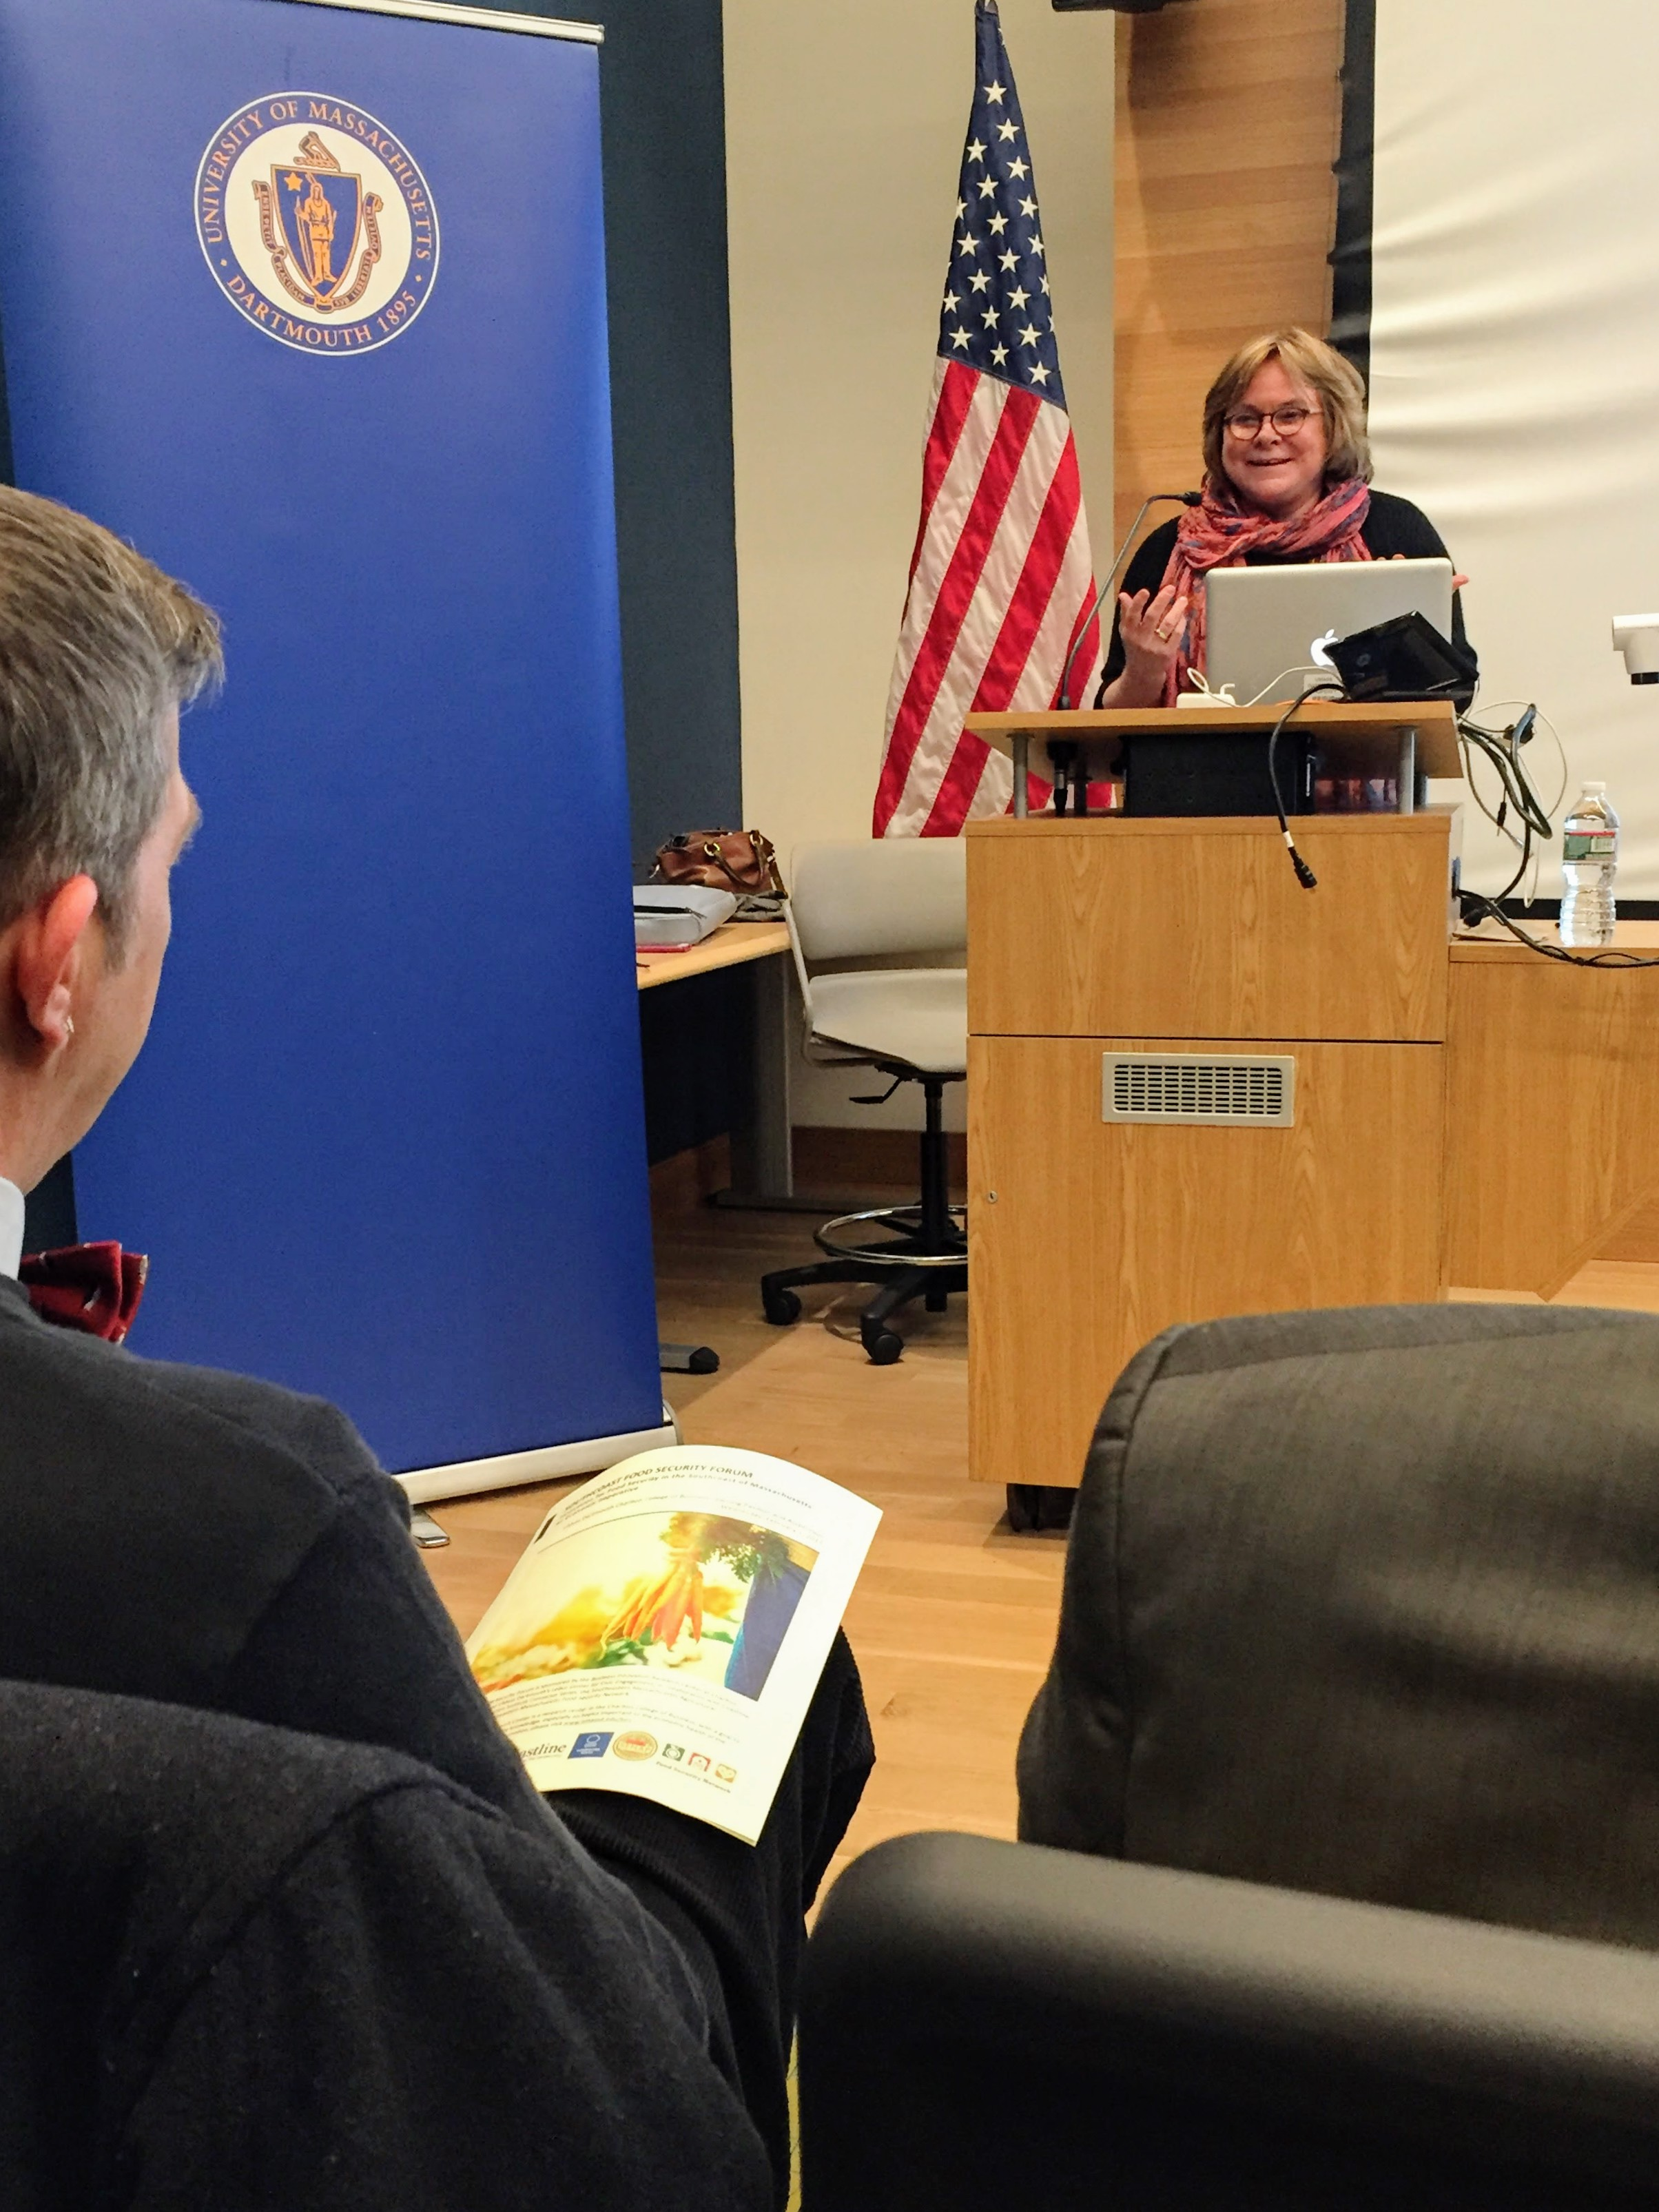 Project Bread Executive Director Ellen Parker Delivers The Keynote Address At The SouthCoast Food Security Forum Held Wednesday, February 1st, At UMass Dartmouth's Charlton College Of Buisness.